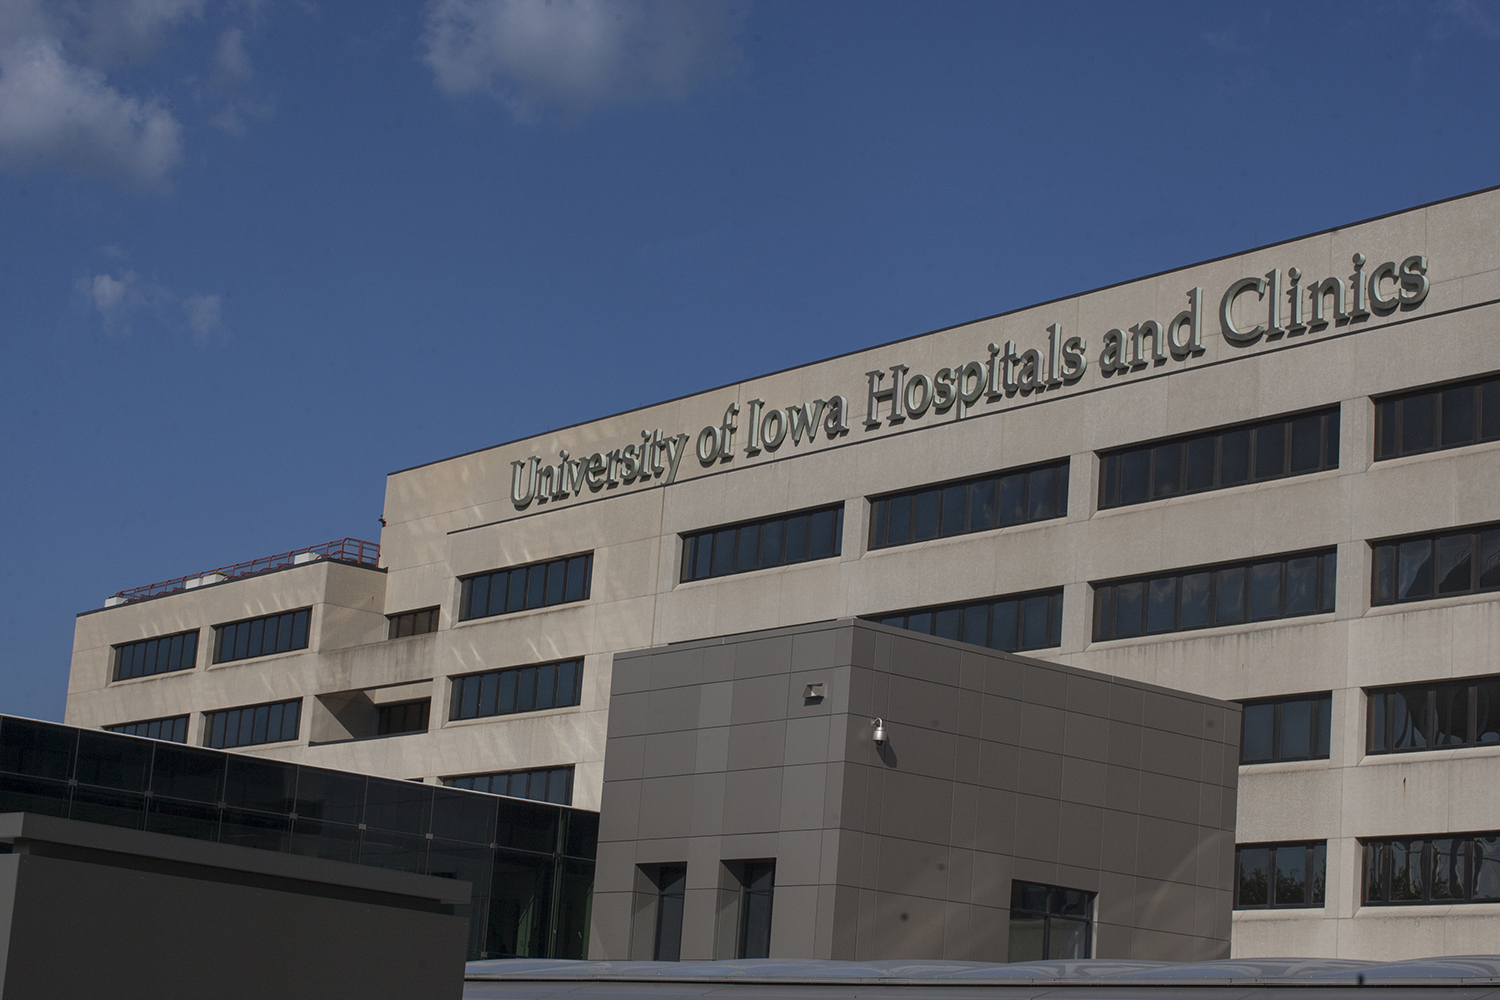 University of Iowa Hospitals and Clinics as seen on Sept 17, 2018.